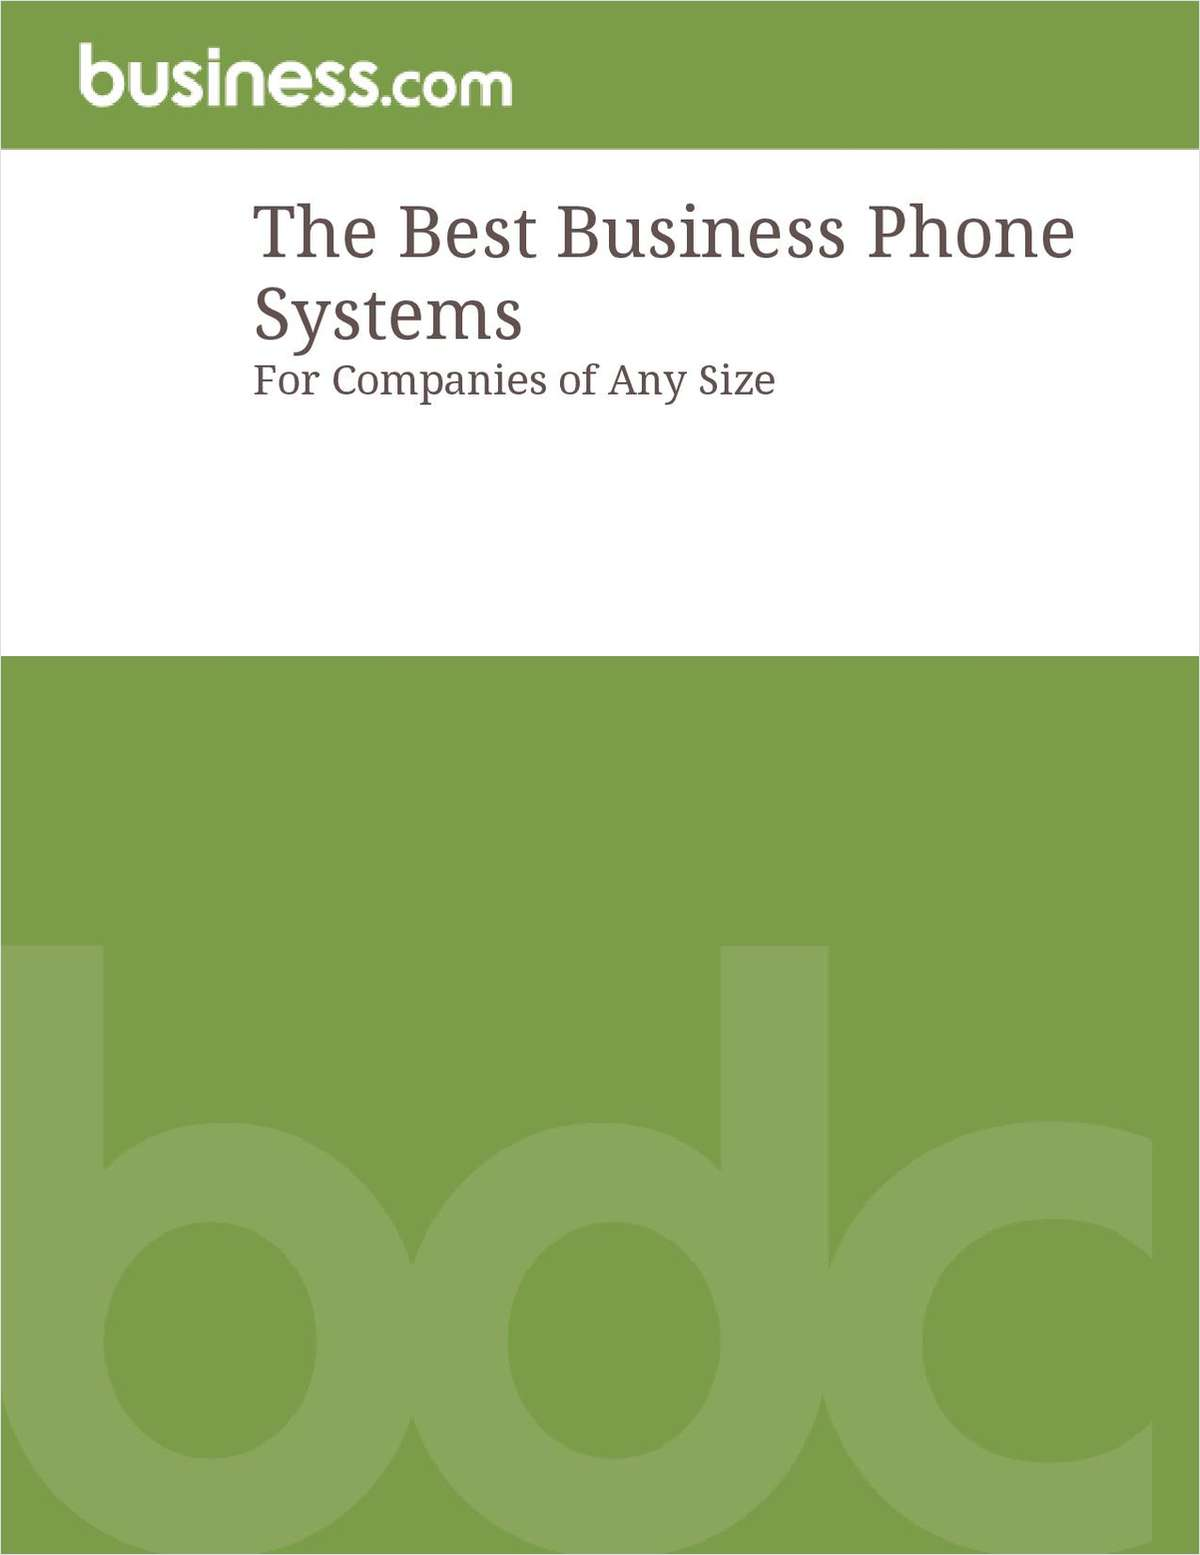 The Best Business Phone Systems: For Companies of Any Size